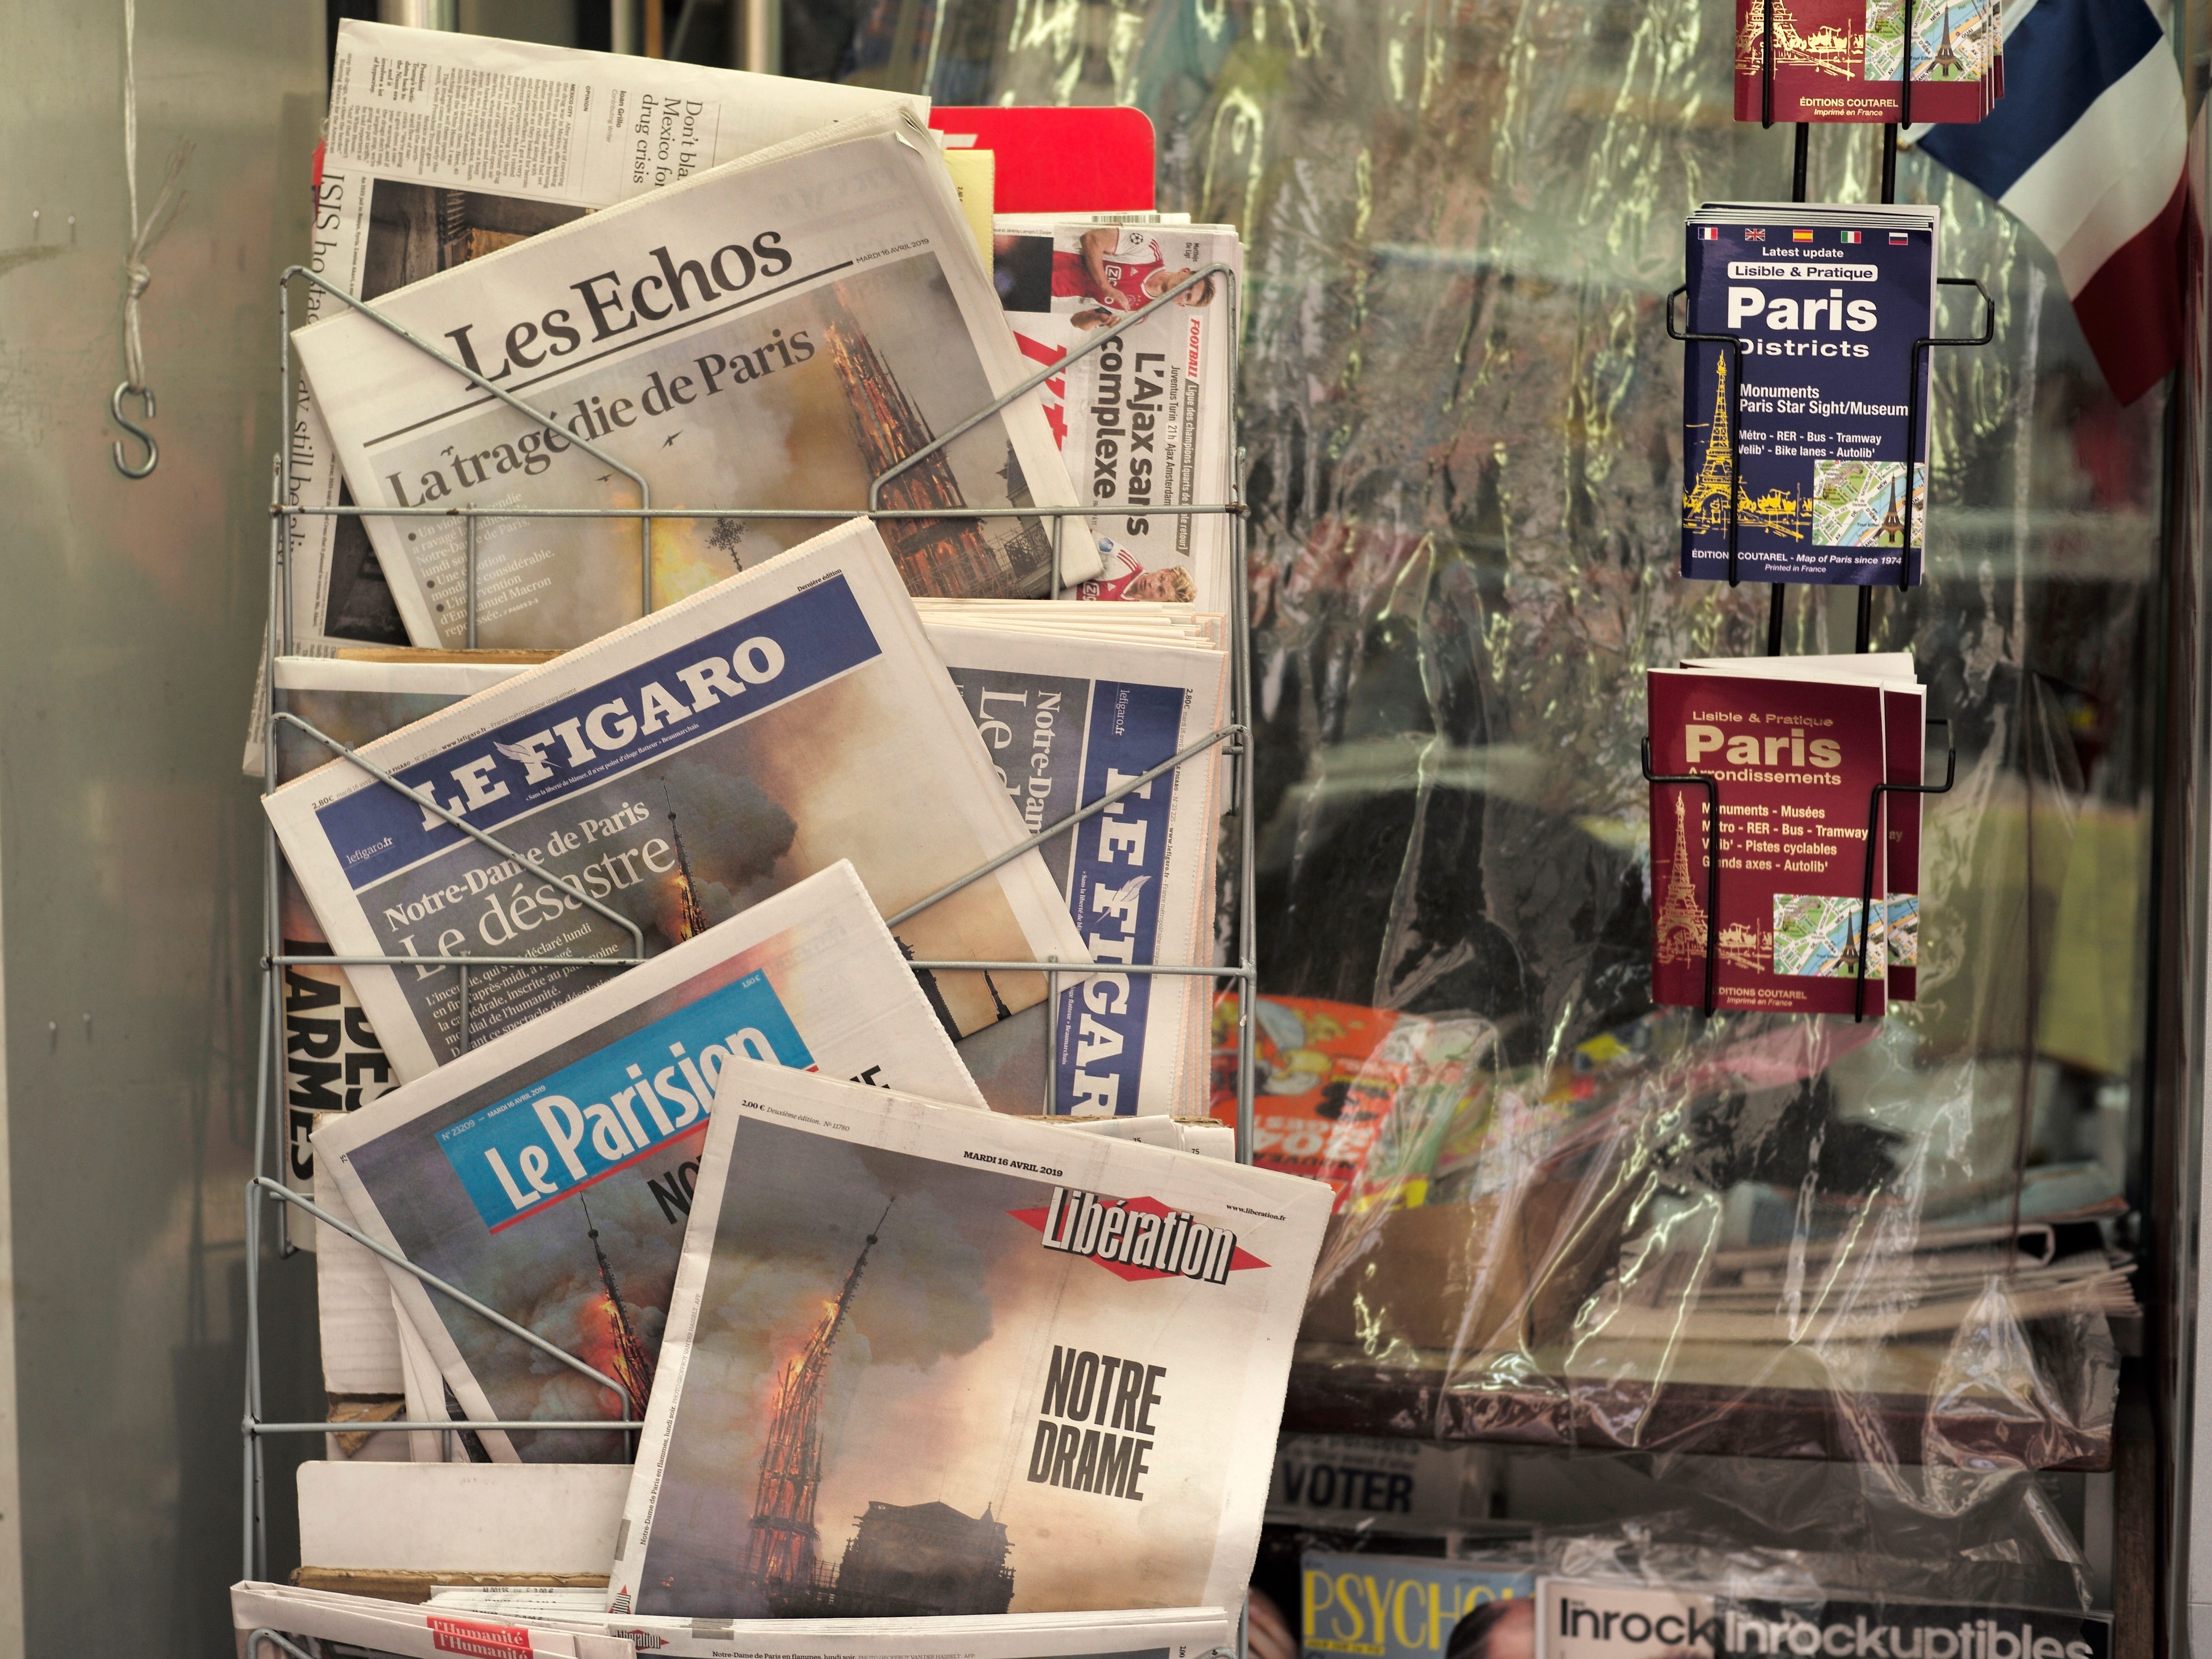 Front pages of newspapers show the Notre Dame cathedral in flames in Paris, April 16, 2019.